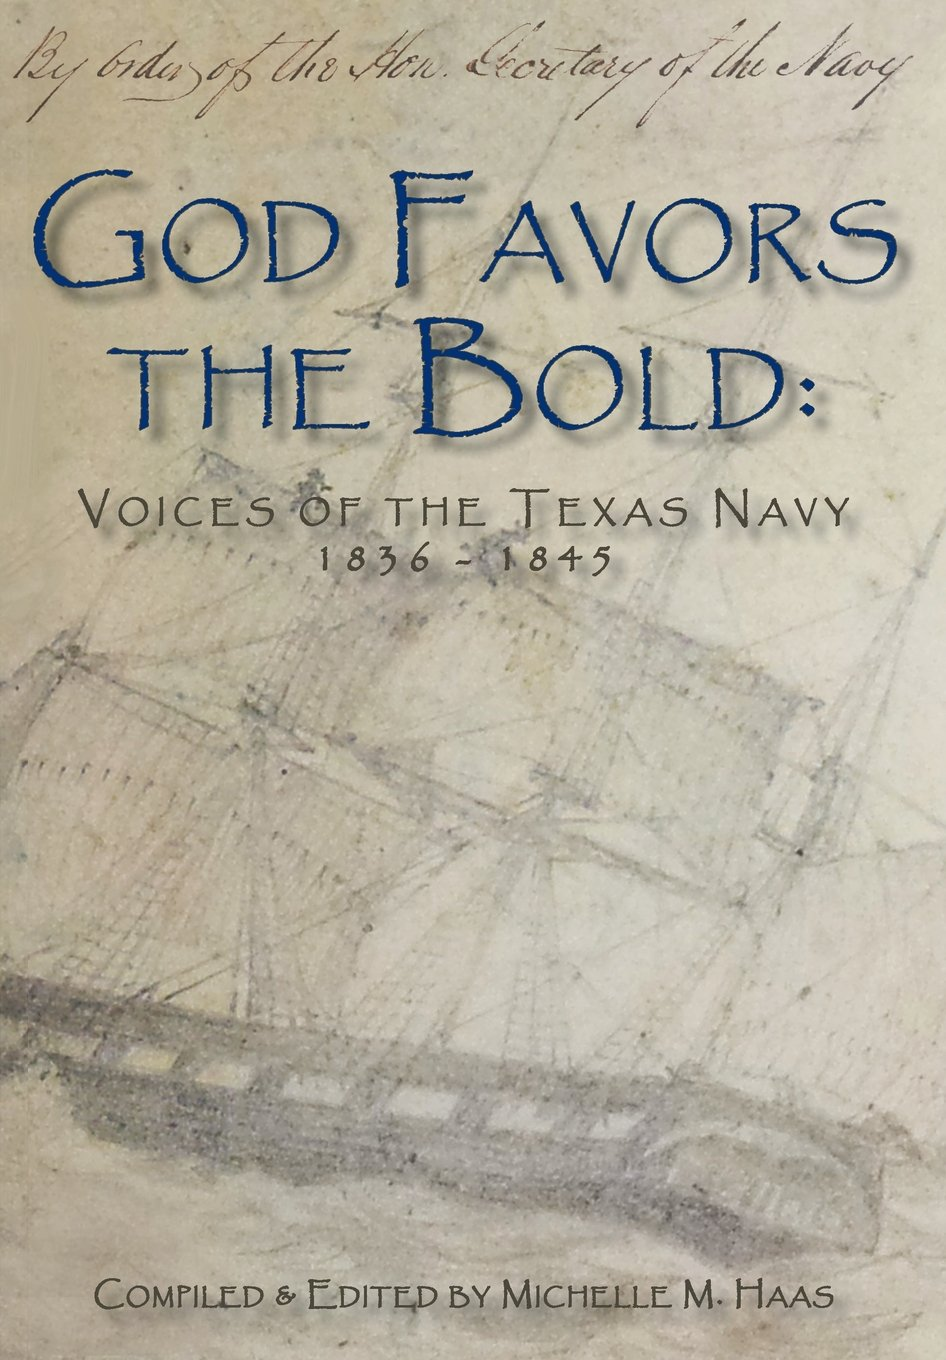 God Favors the Bold: Voices of the Texas Navy 1836-1845 PDF